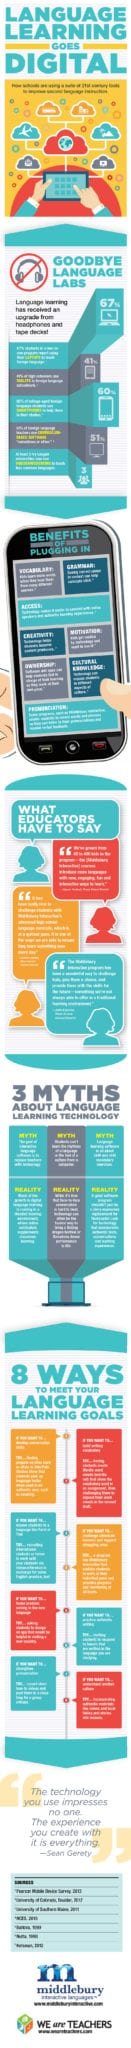 Digital Language Learning Infographic